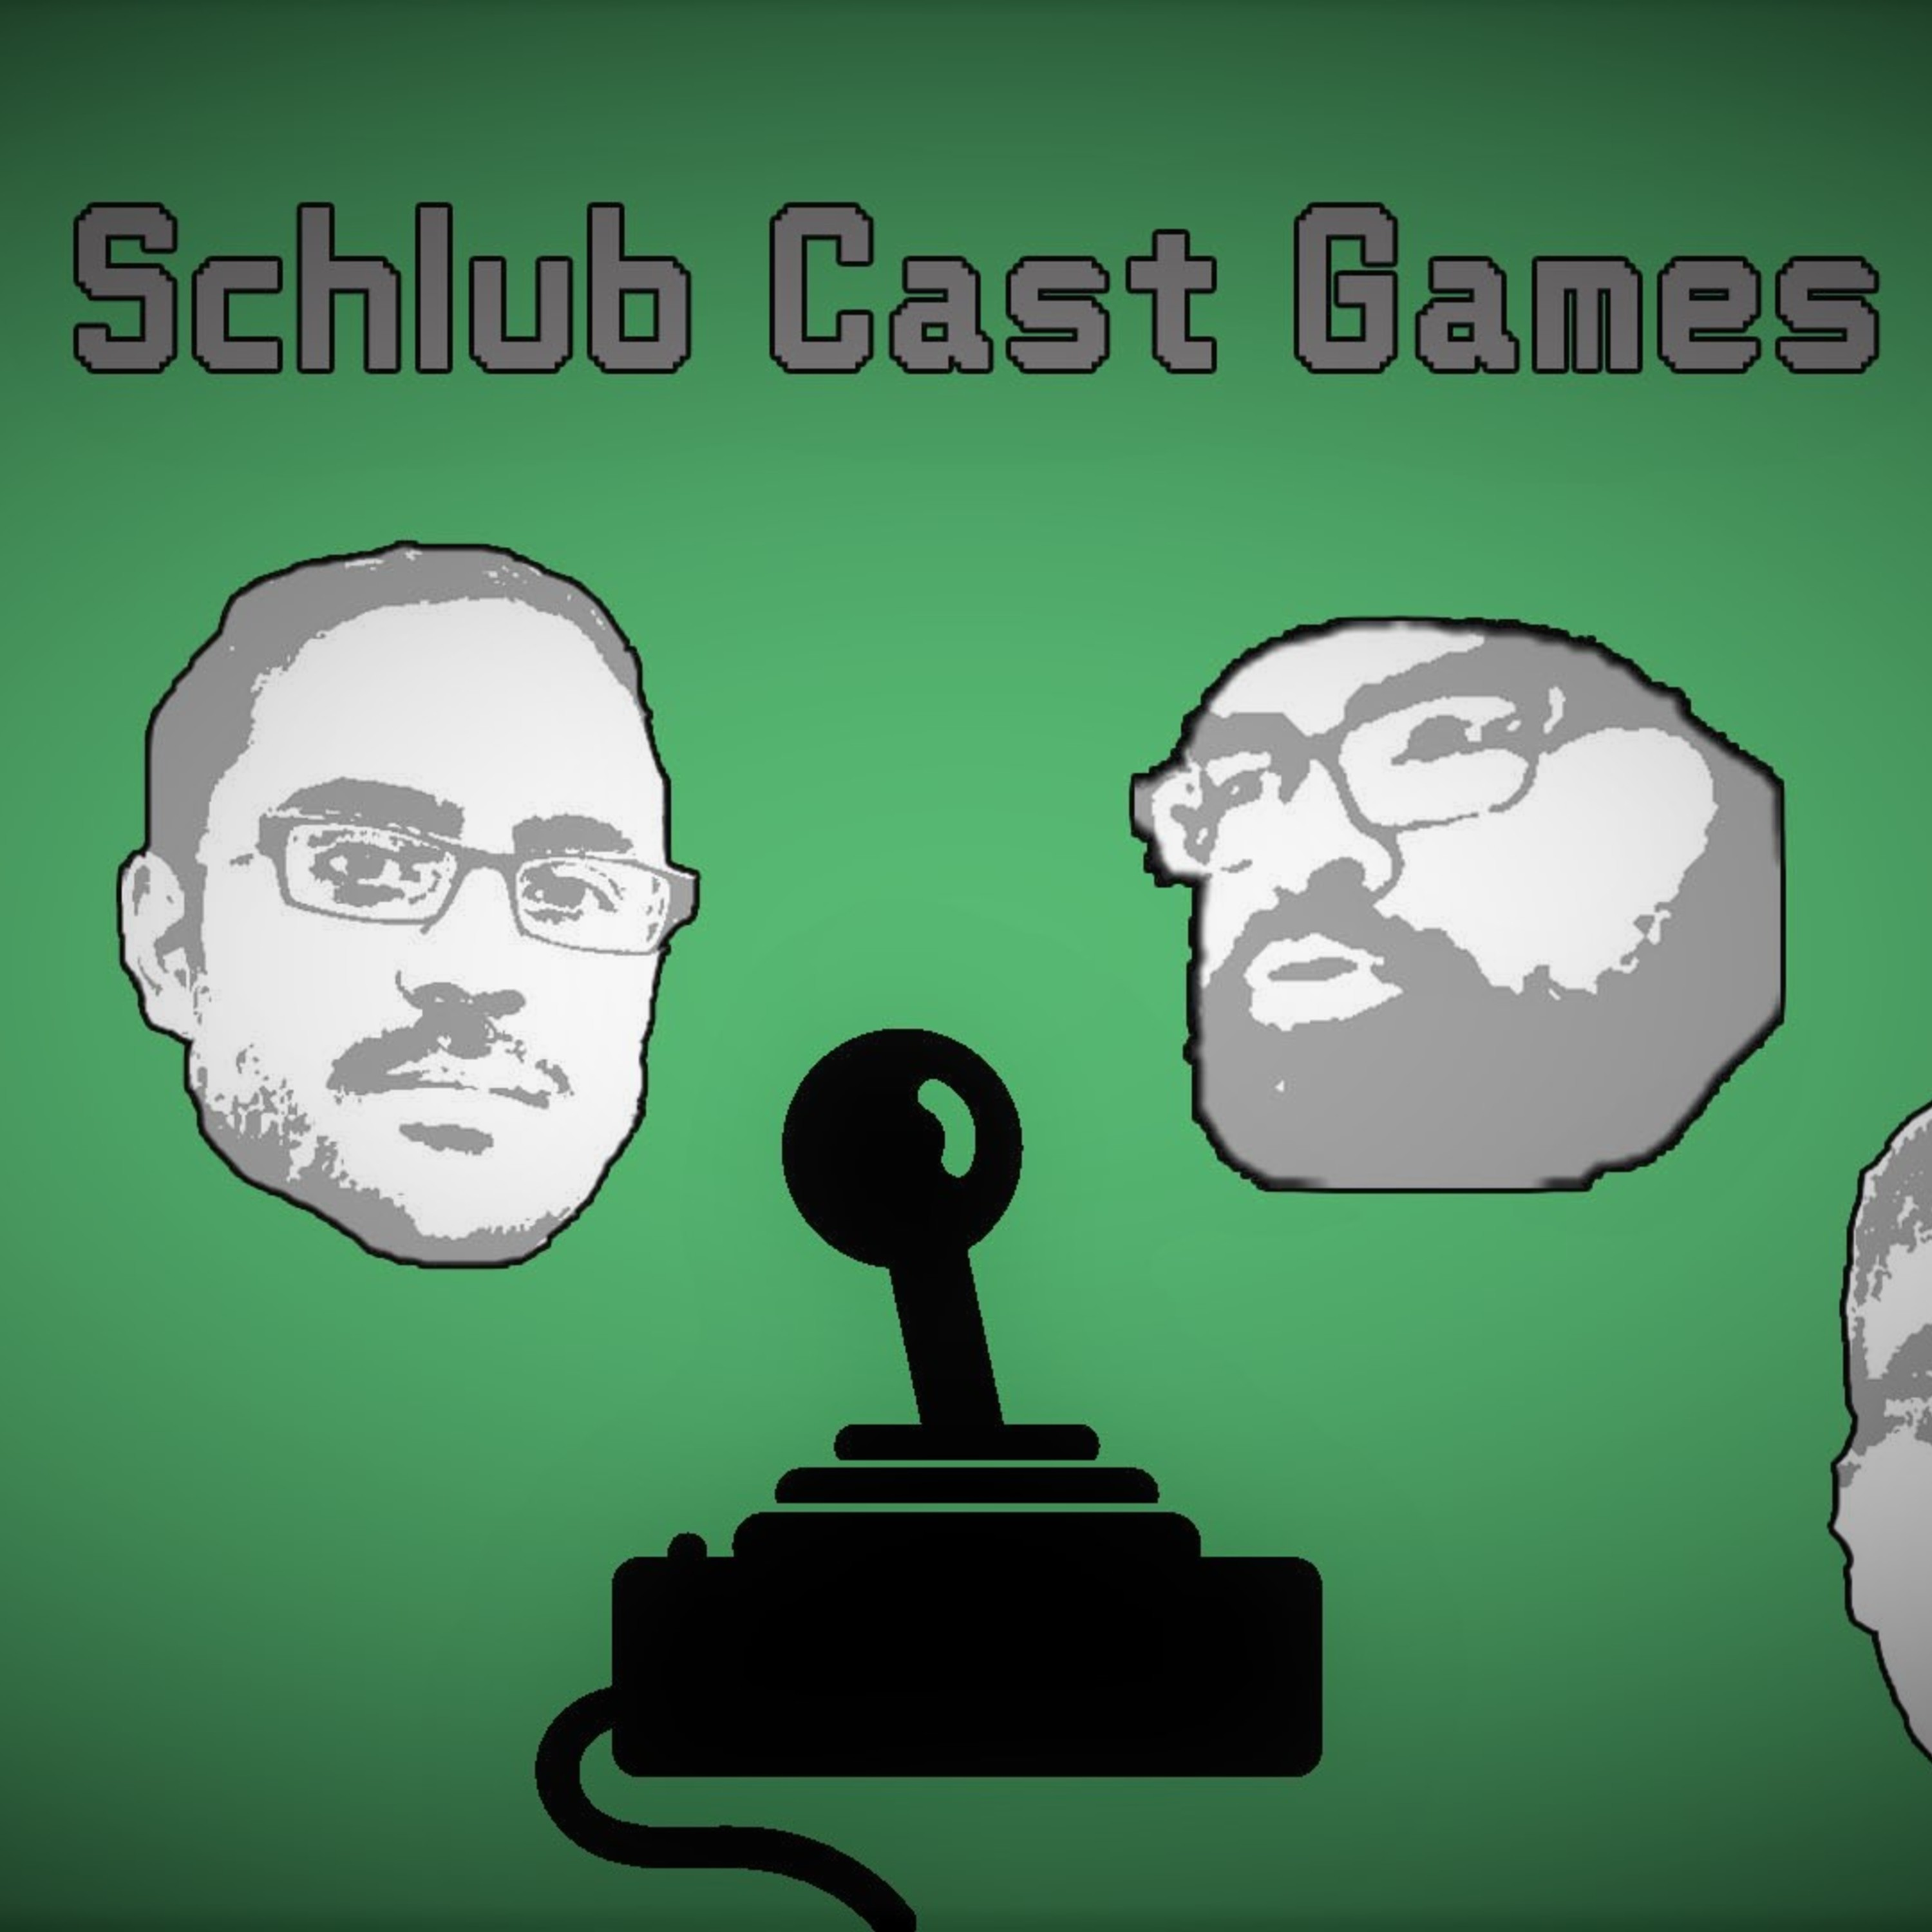 Episode 104 - Schlub Cast Games: Top 5 Games of 2018 - The